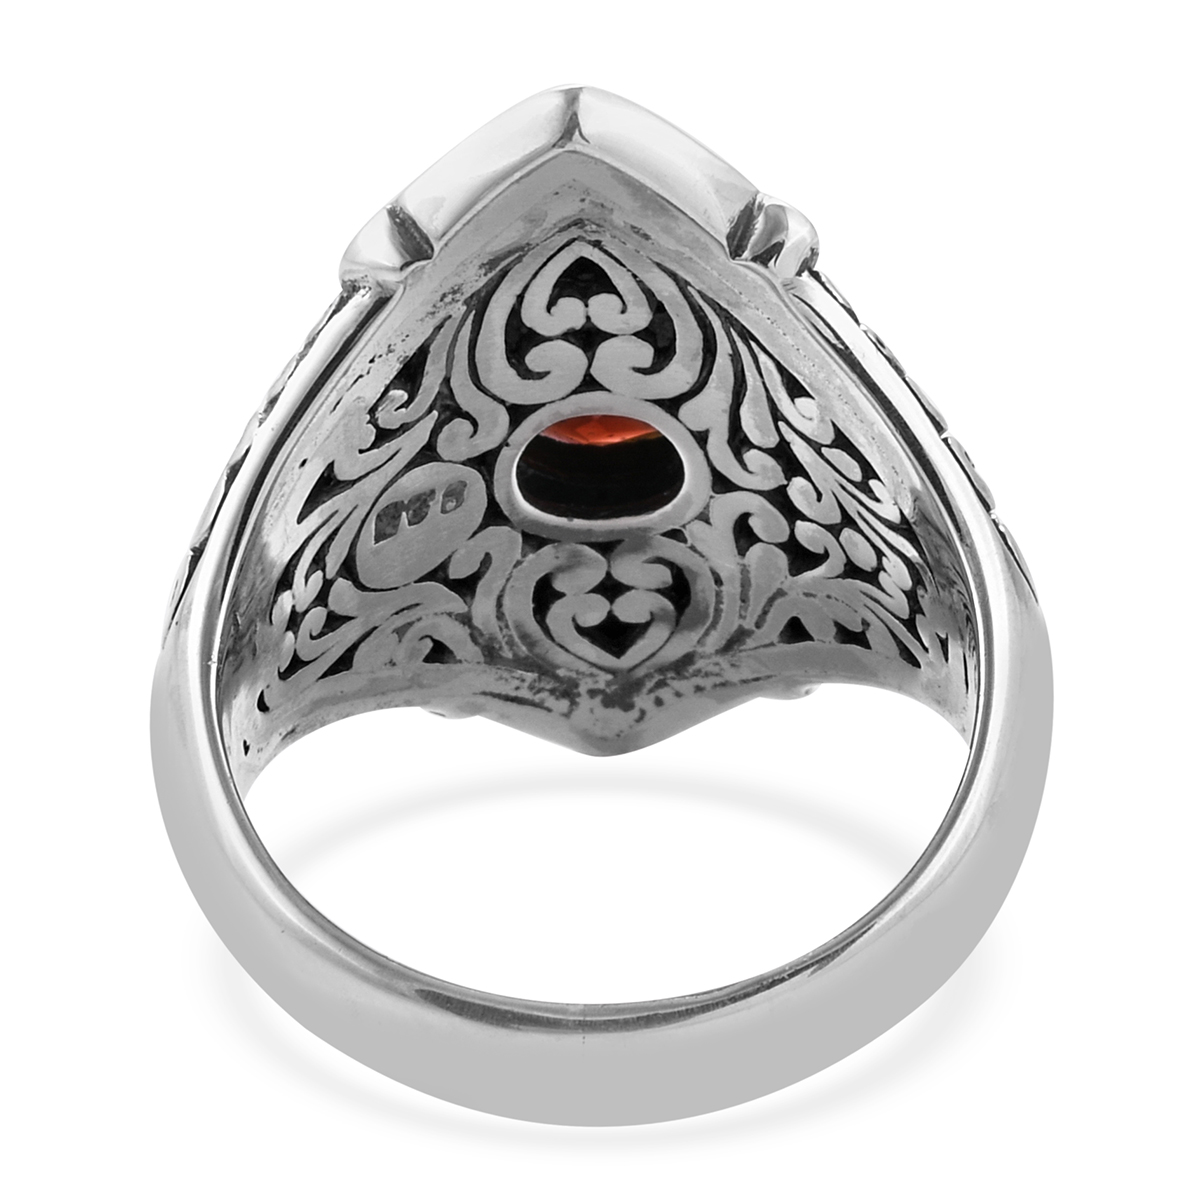 BALI LEGACY Mozambique Garnet Ring in Sterling Silver (Size 10.0) (Avg. 10.01 g) 2.16 ctw